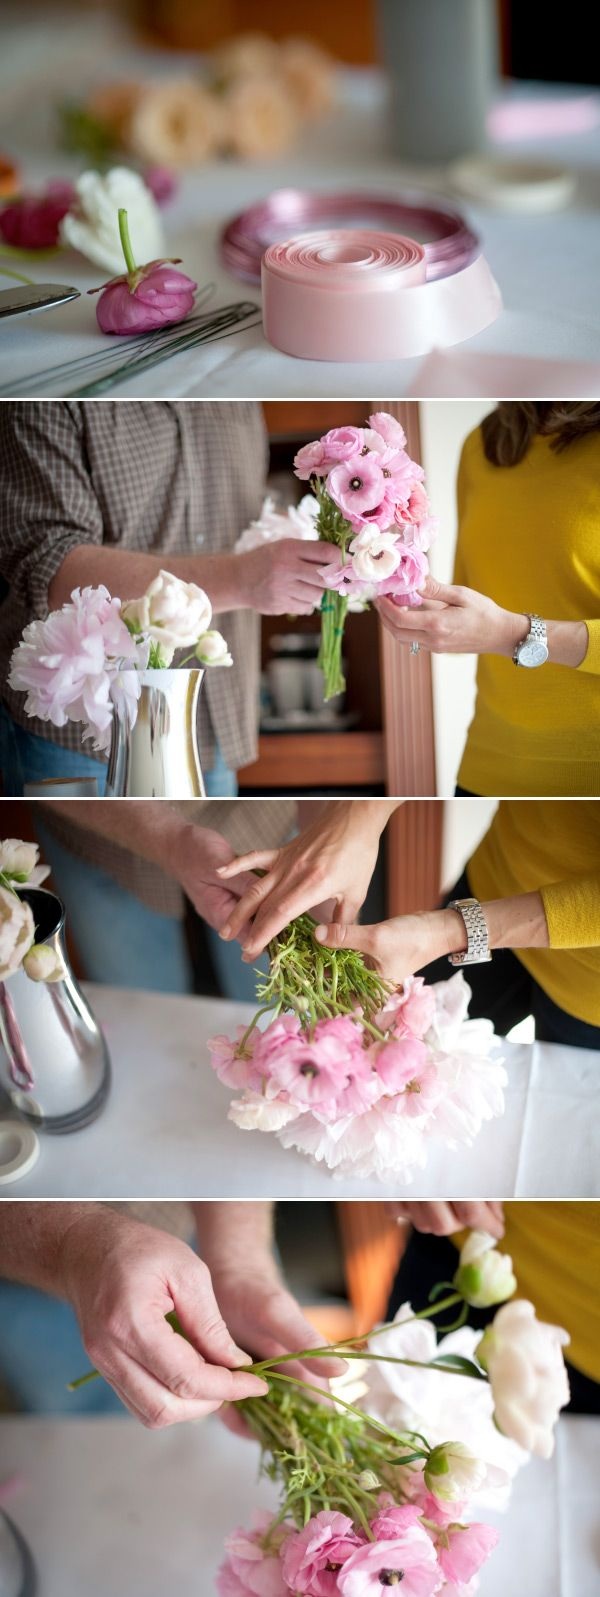 How to make your own flower bouquet! DIY flowers 1001hochzeiten